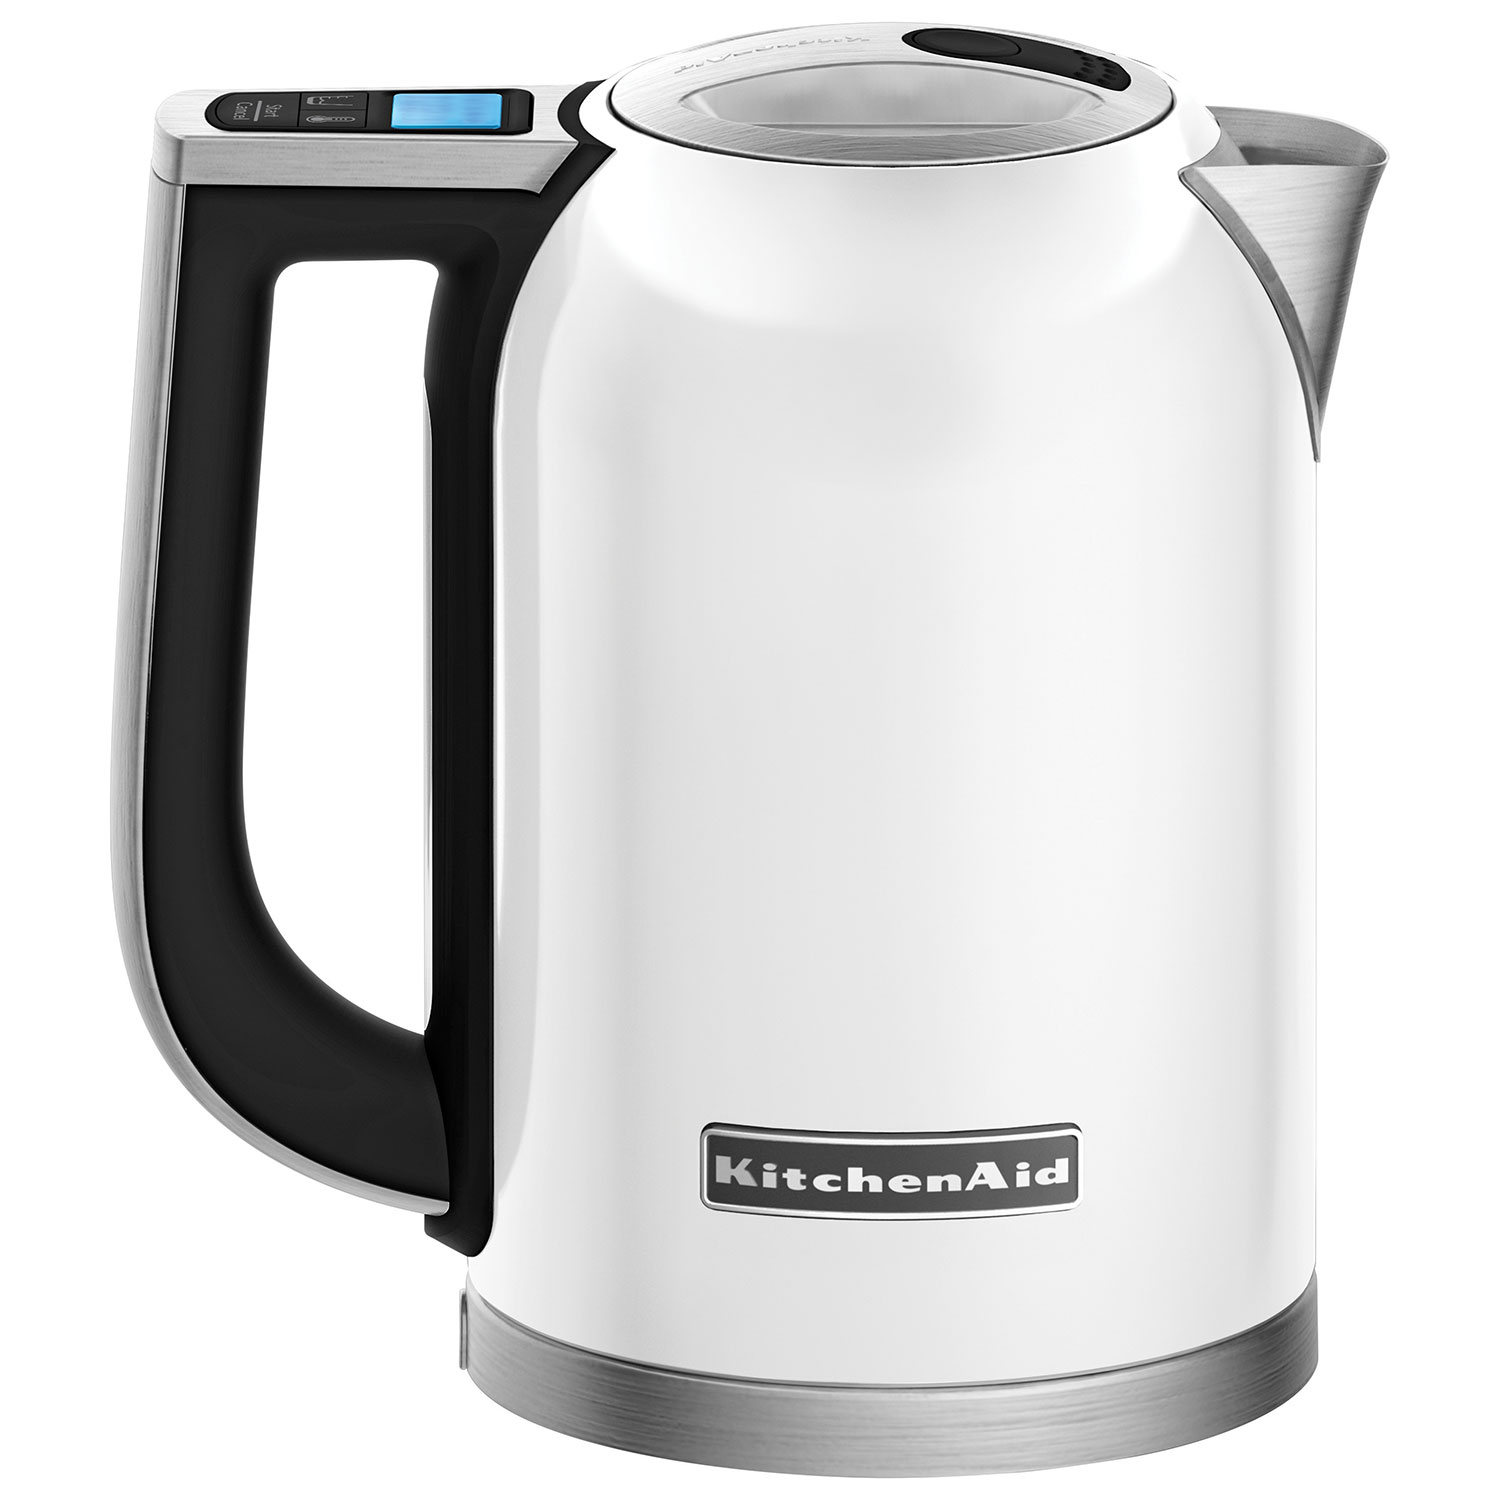 kitchenaid electric kettle  l  white  electric kettles  - kitchenaid electric kettle  l  white  electric kettles  best buycanada